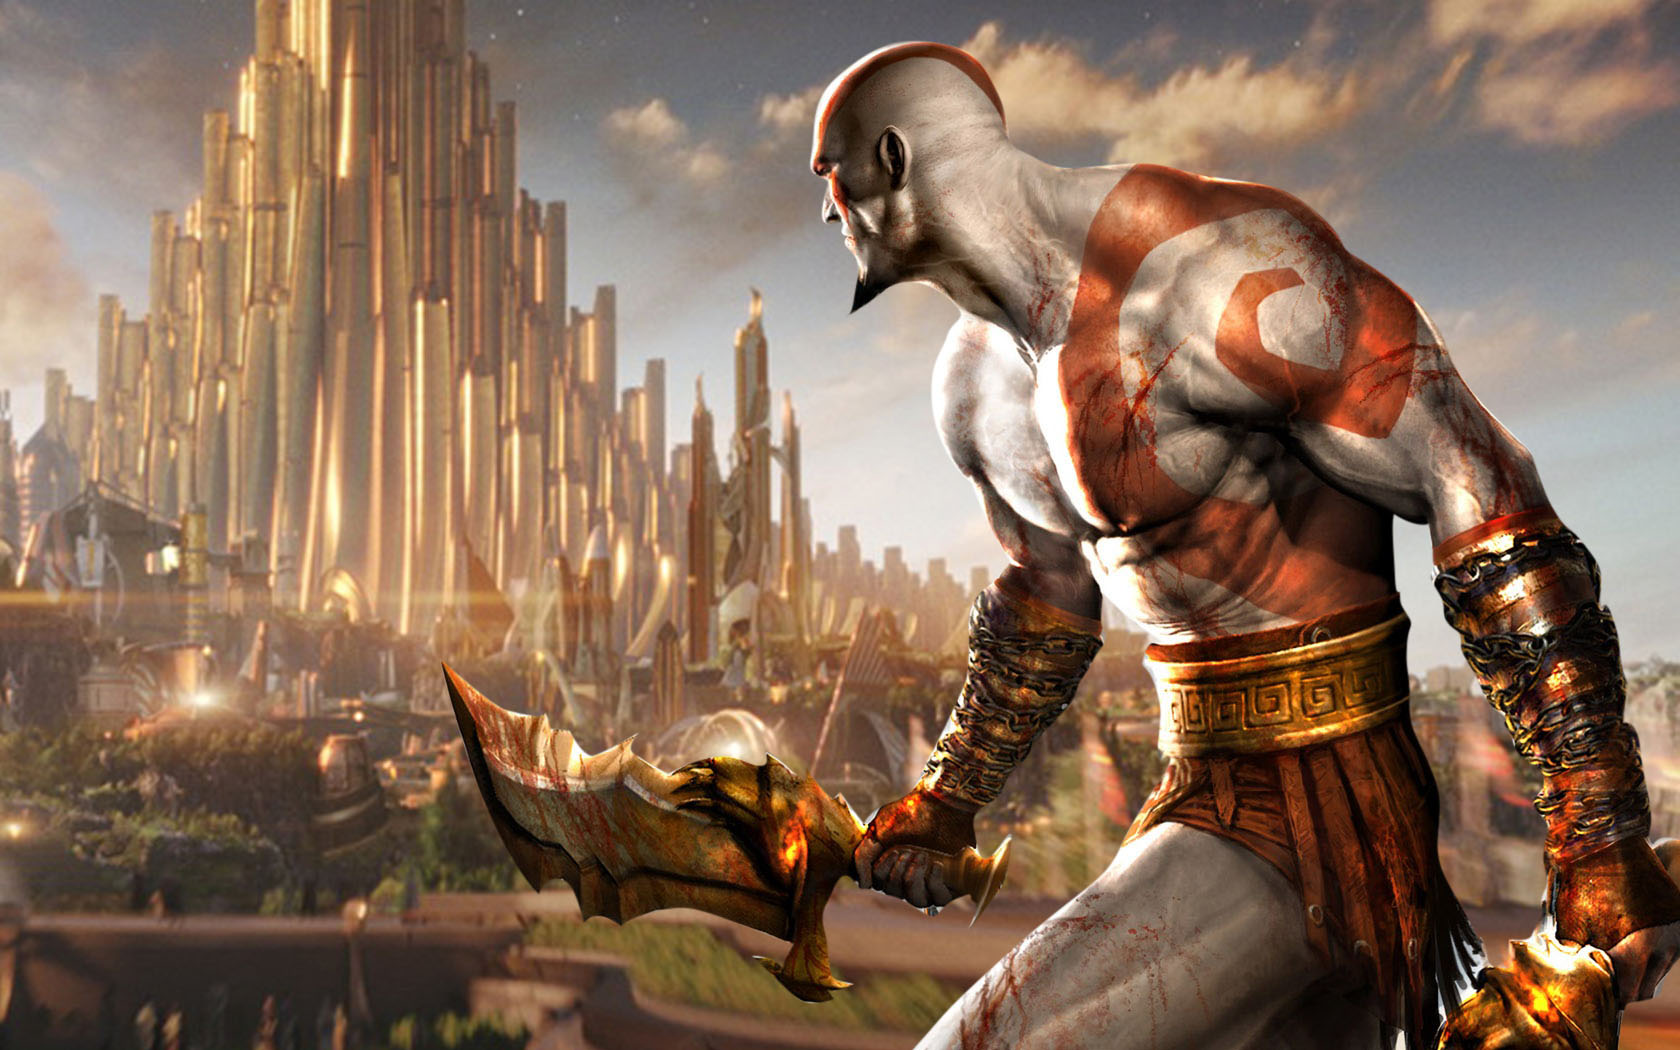 Kratos to fight Norse gods in next God of War game? - Nerd